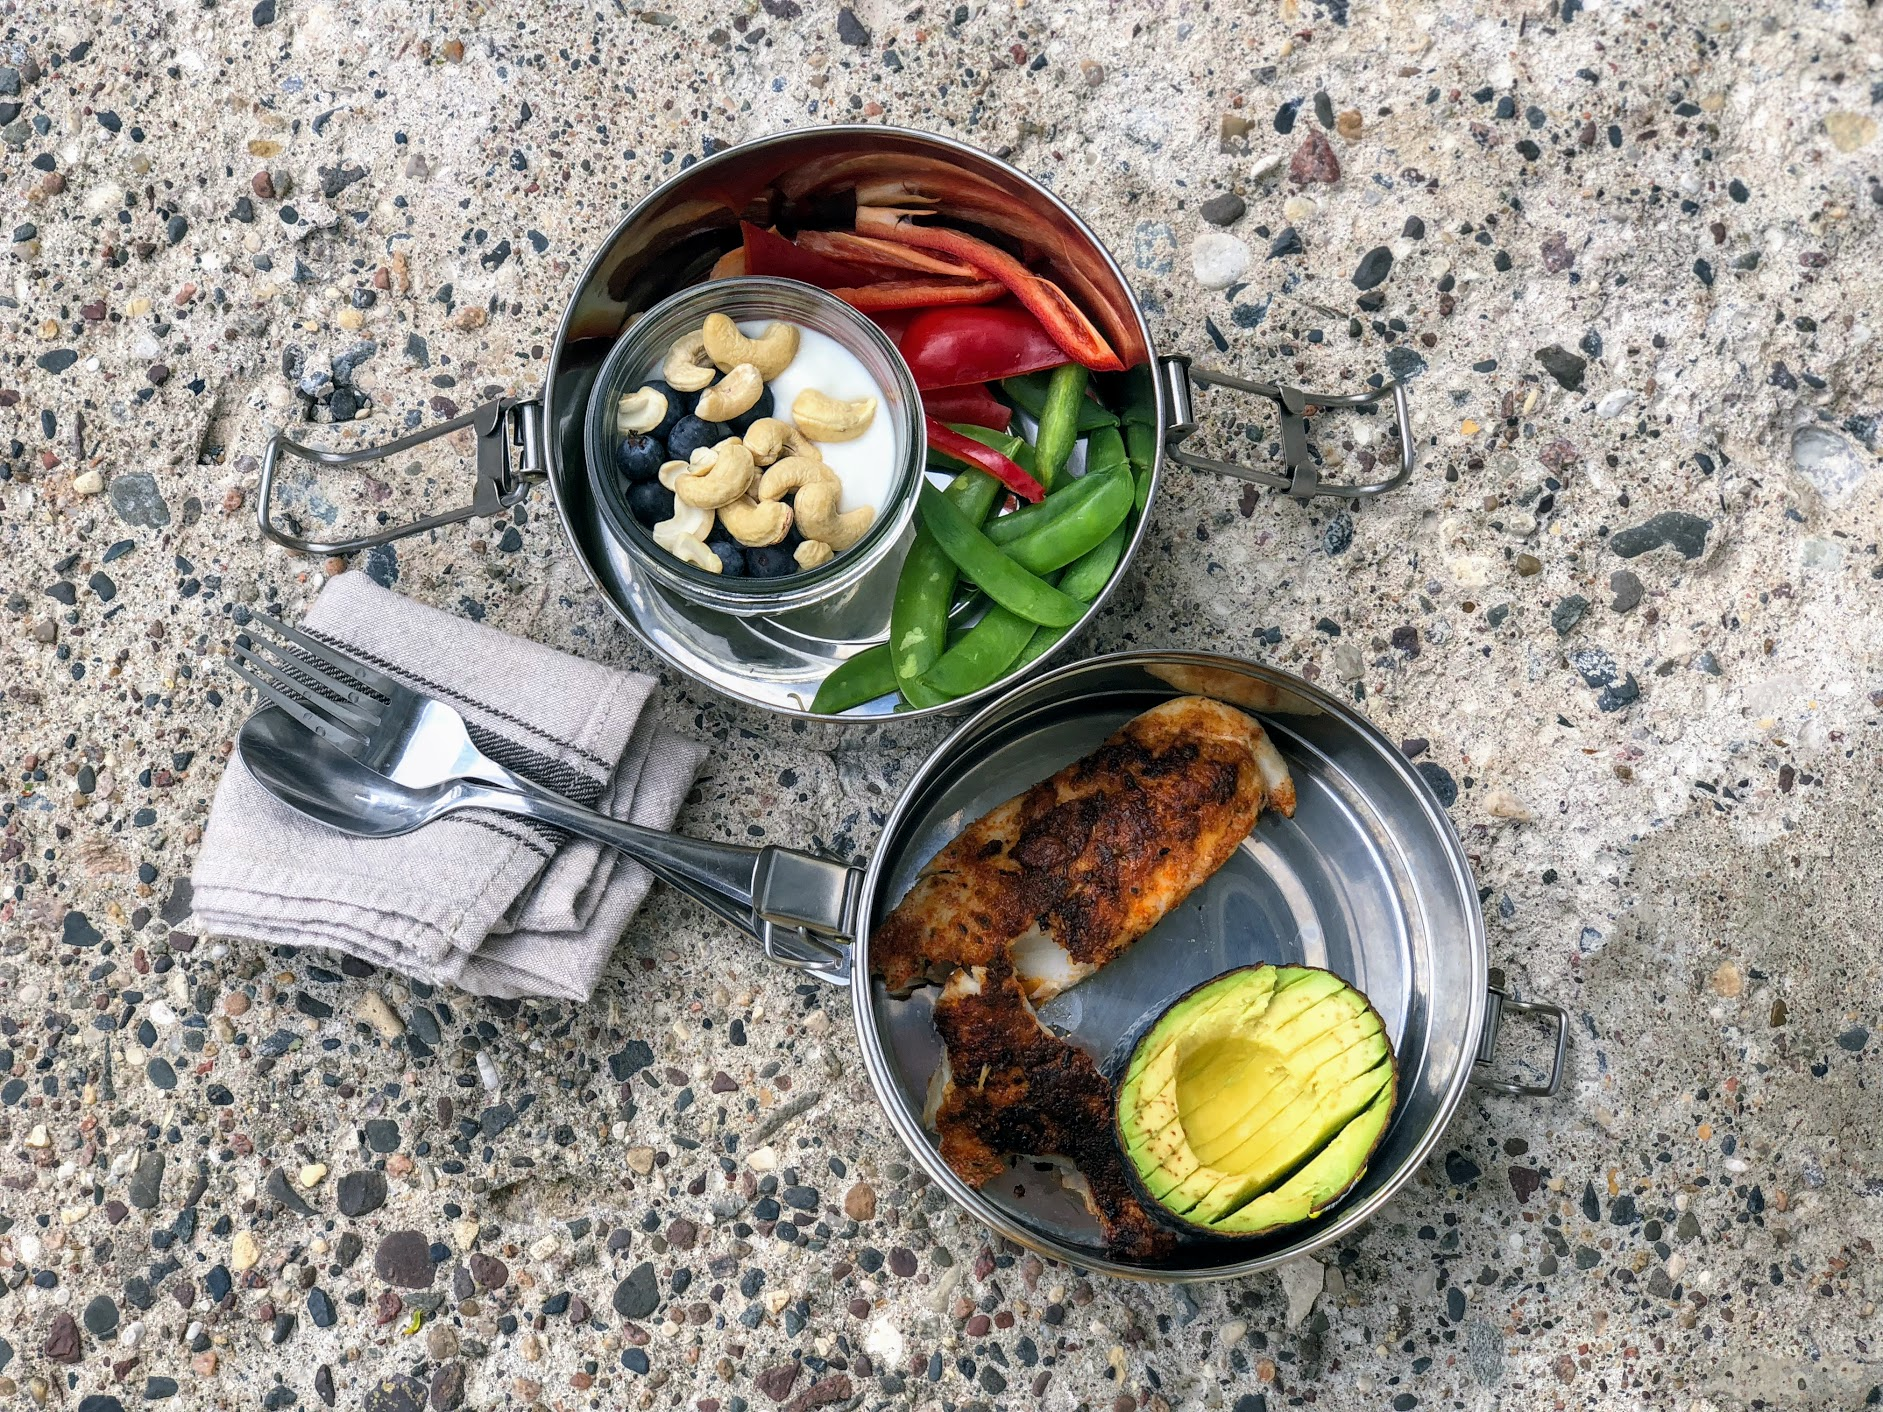 To-Go Ware   Stainless steel, easily recyclable, kids can typically maneuver the clip, plenty of room, dishwasher safe